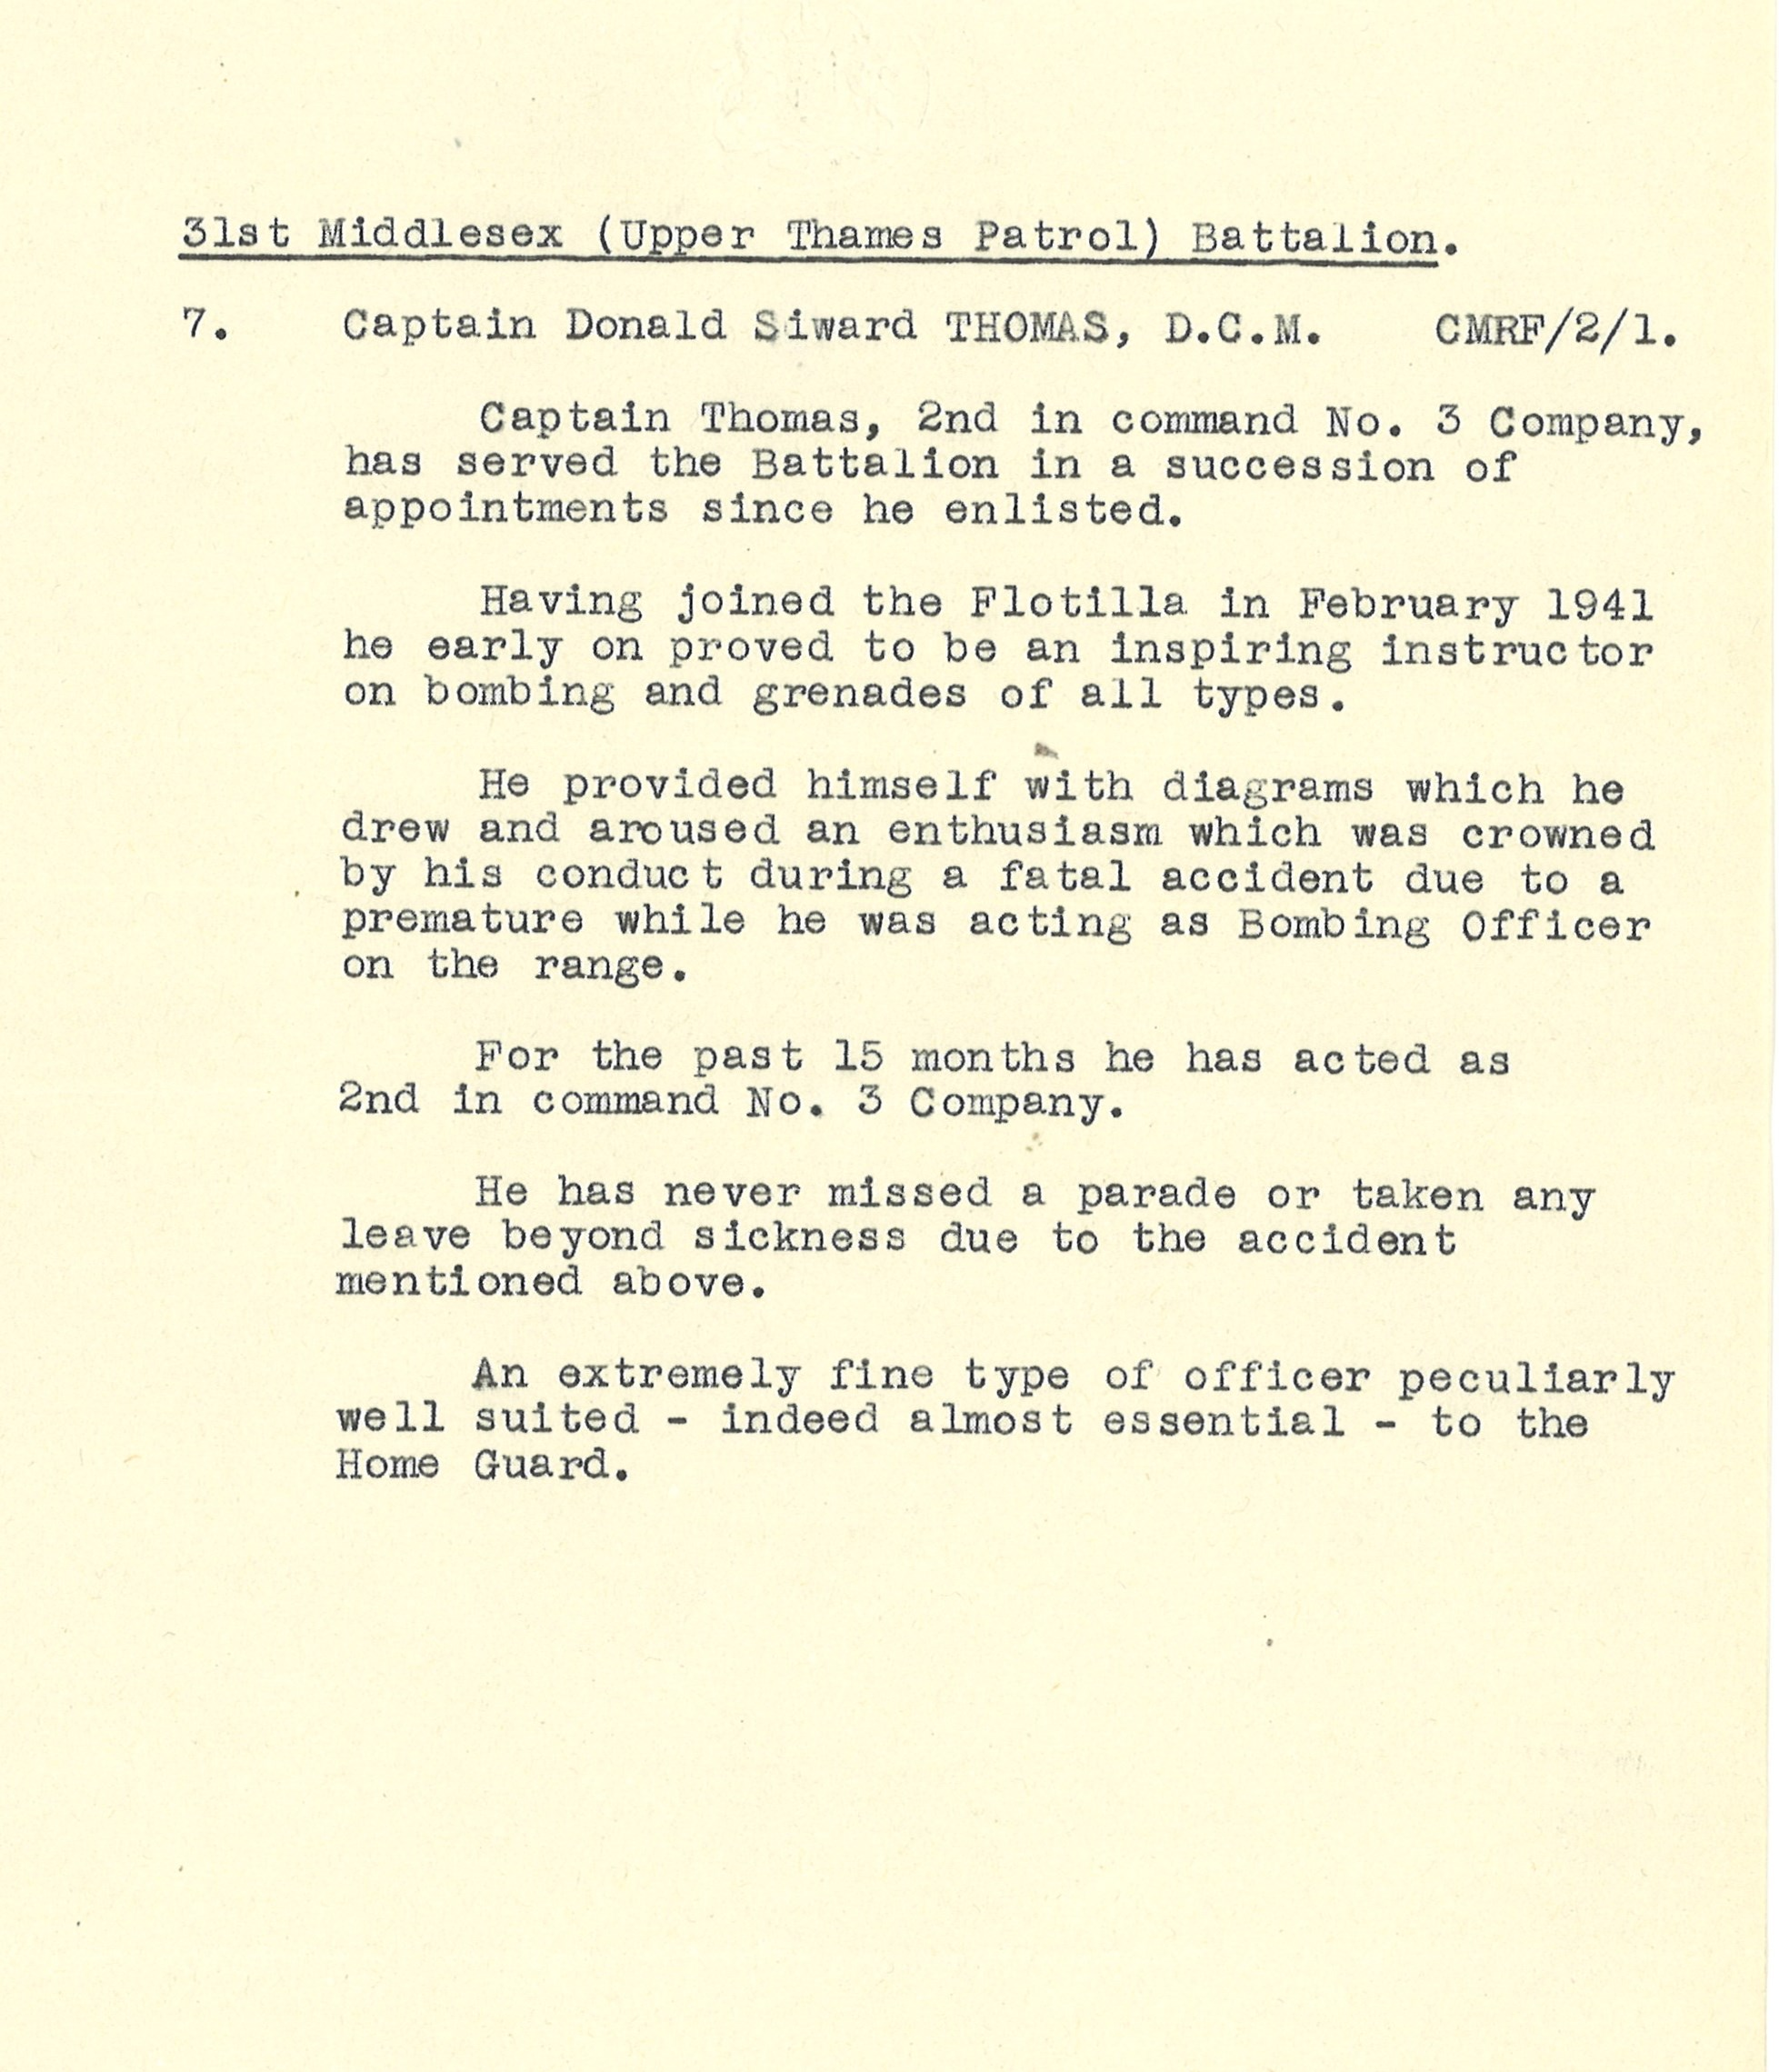 Typewritten recommendation for Captain Donald Siward Thomas